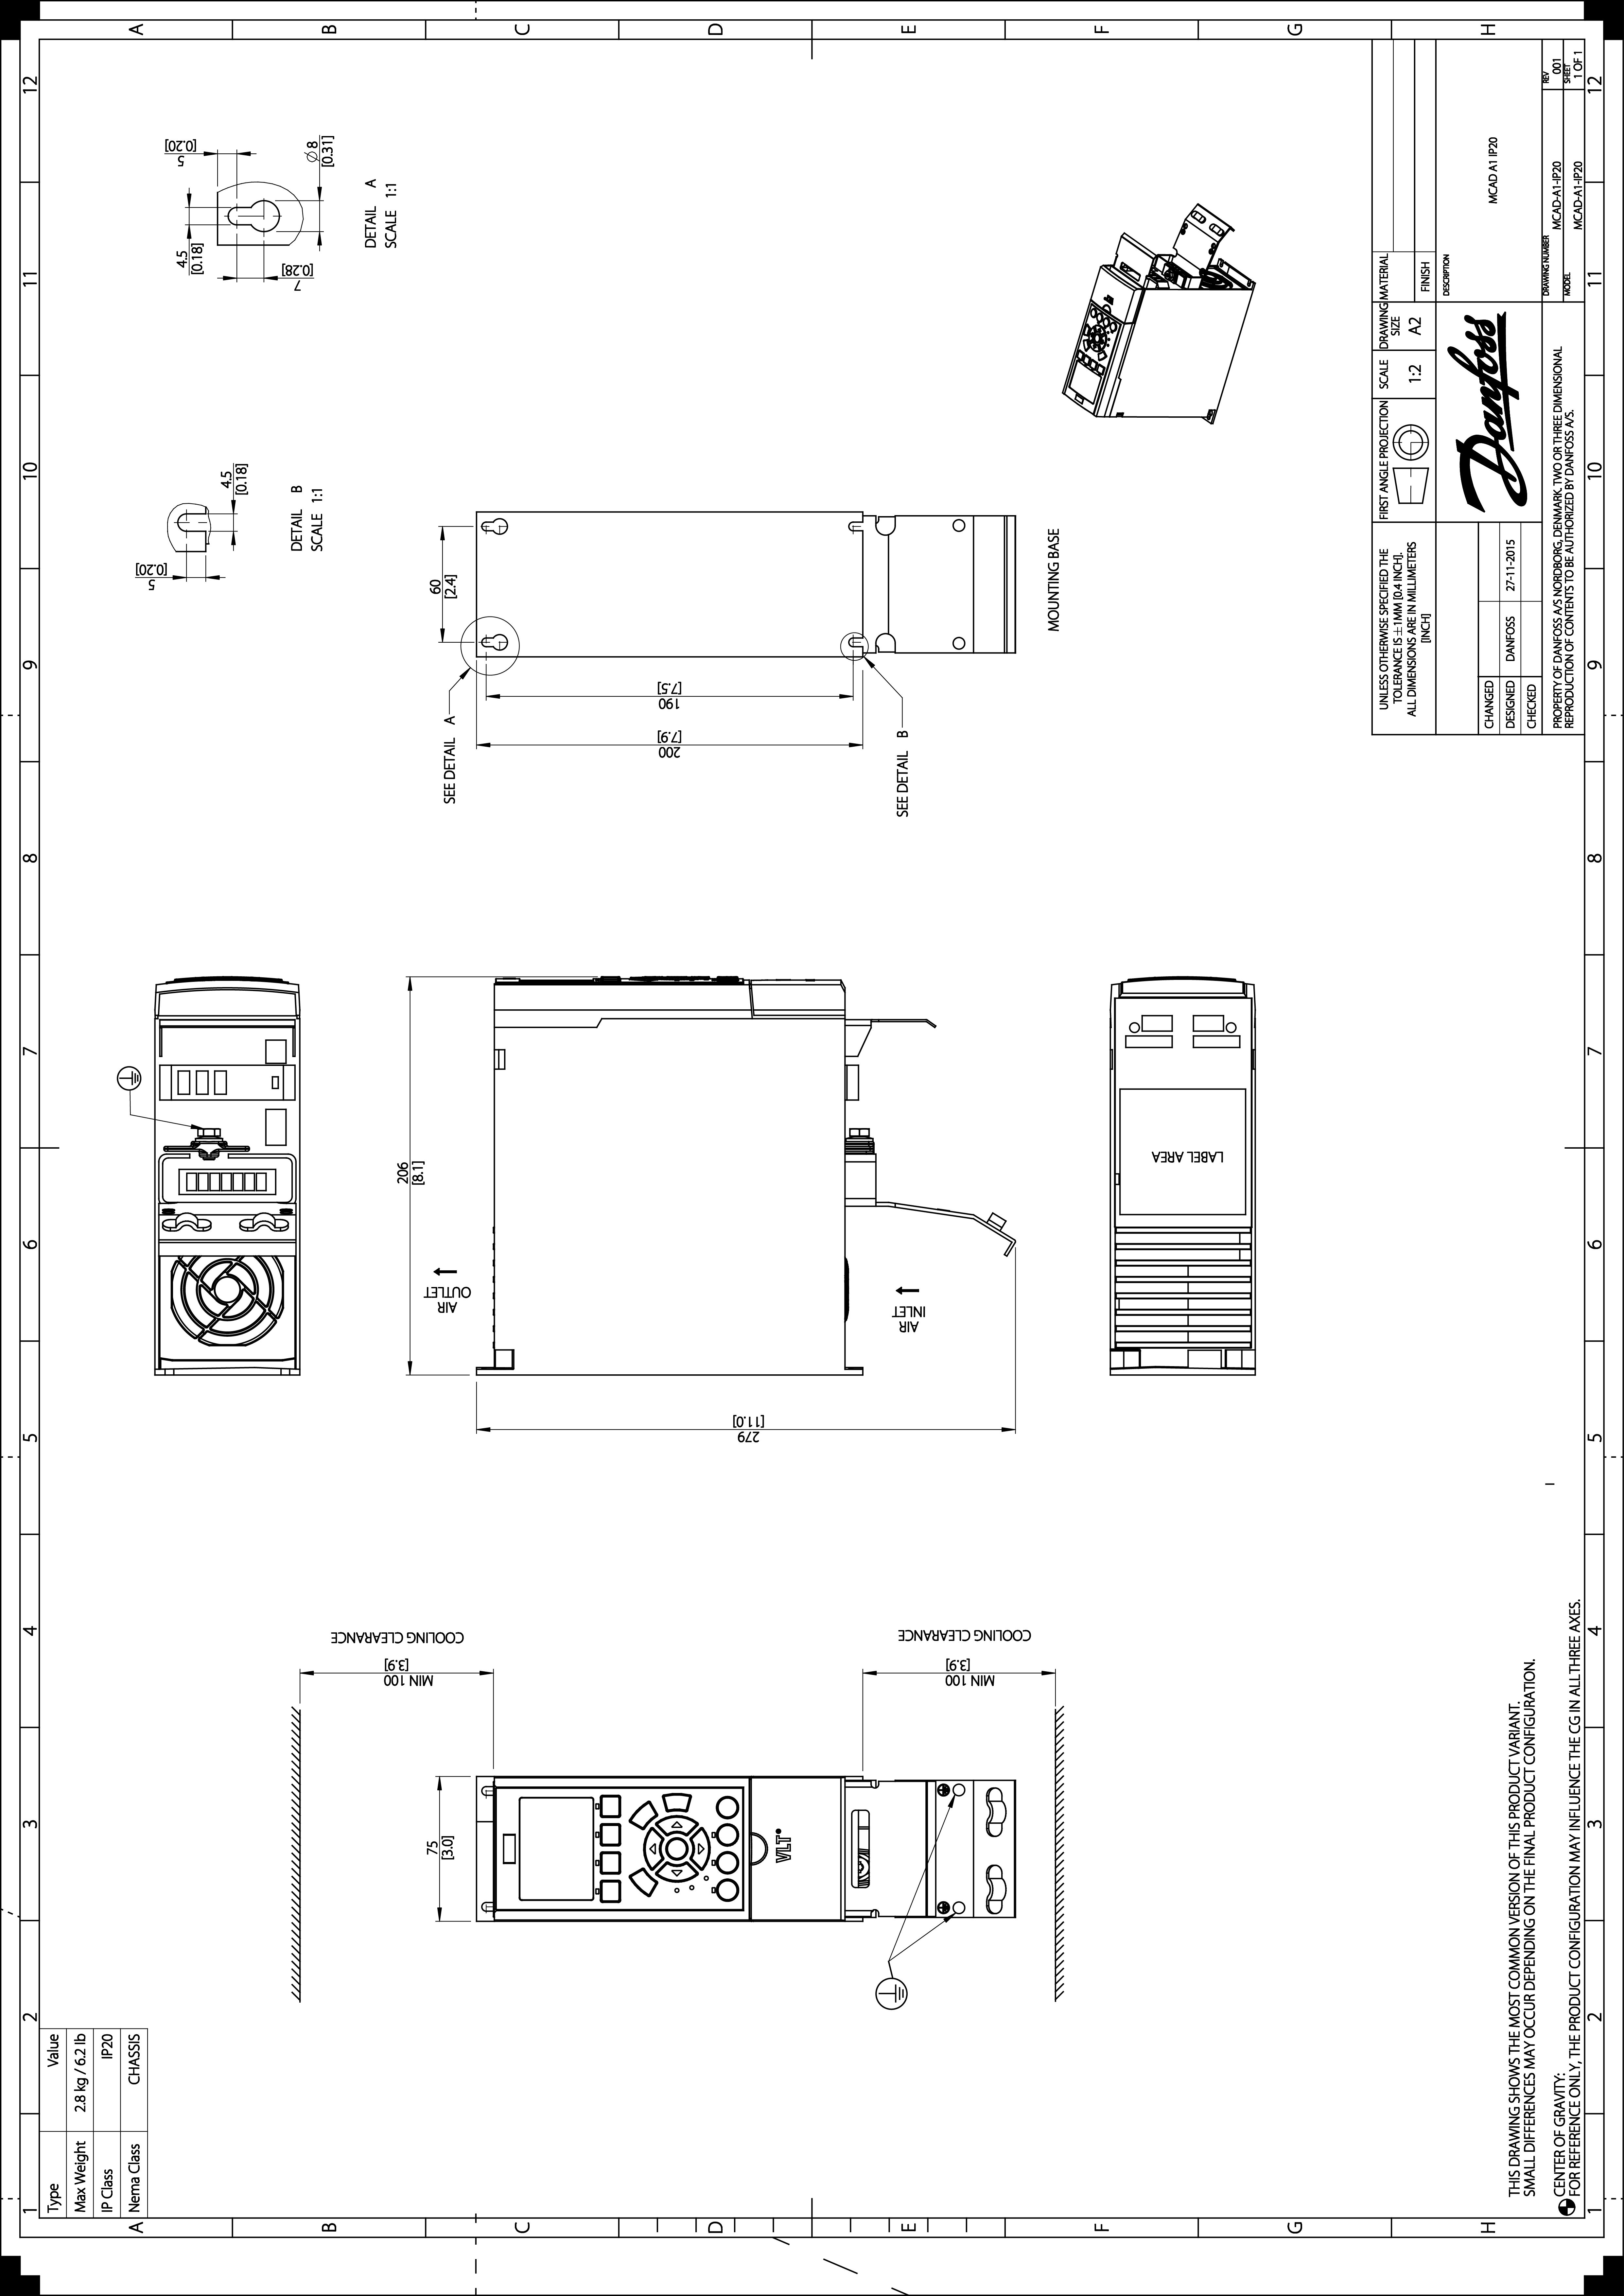 Vlt Automationdrive Fc 301 302 Danfoss 3d Hvac Drawing Images 20 Mb